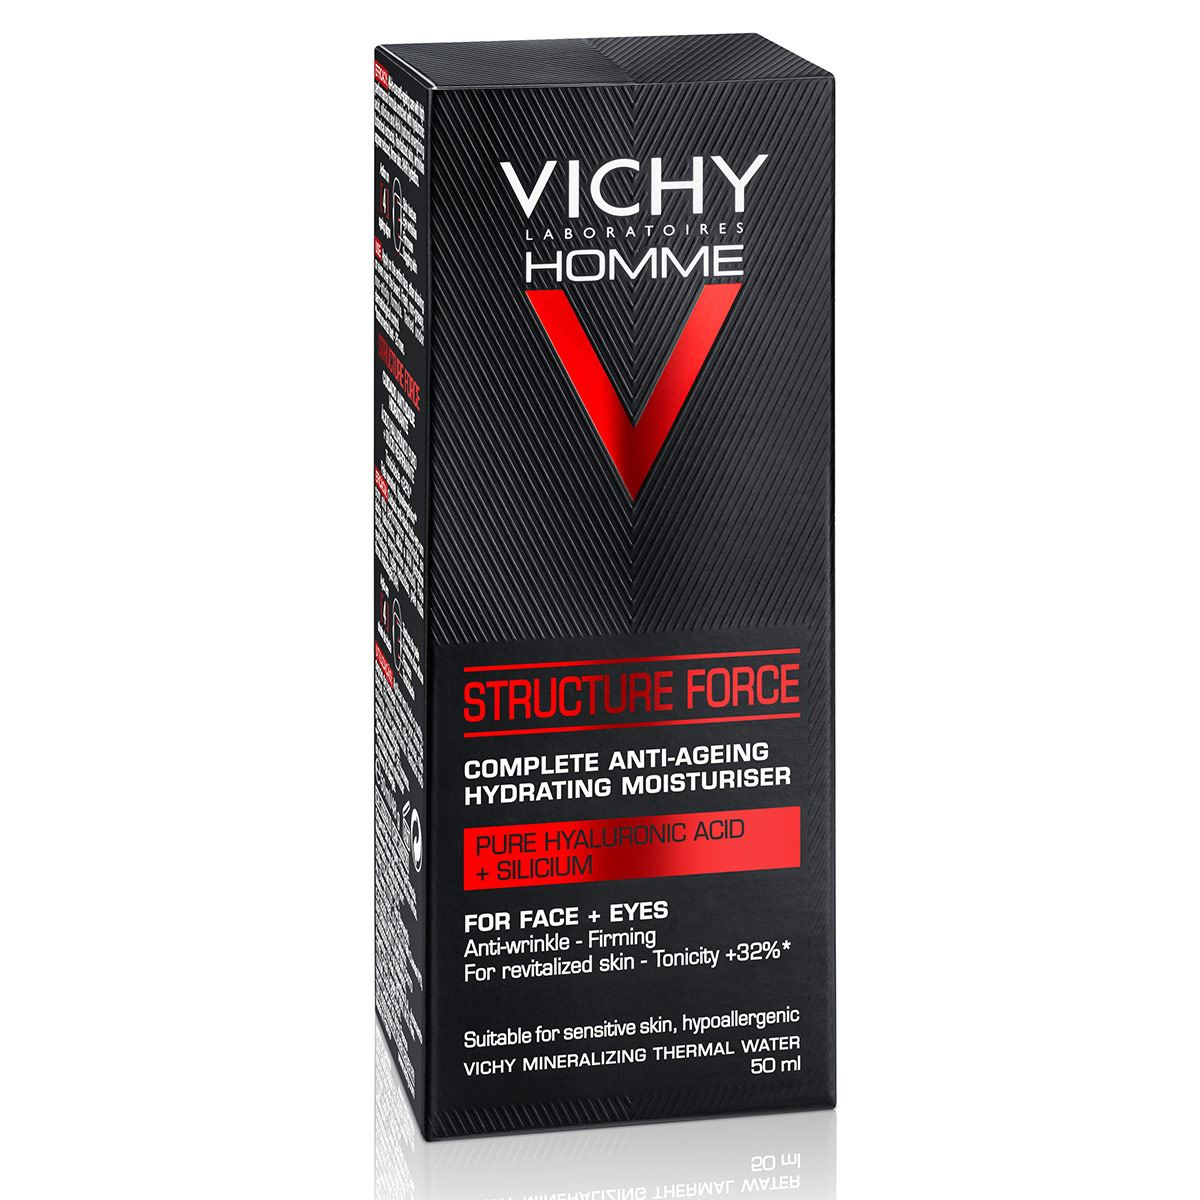 Homme Structure Force 50ml Vichy